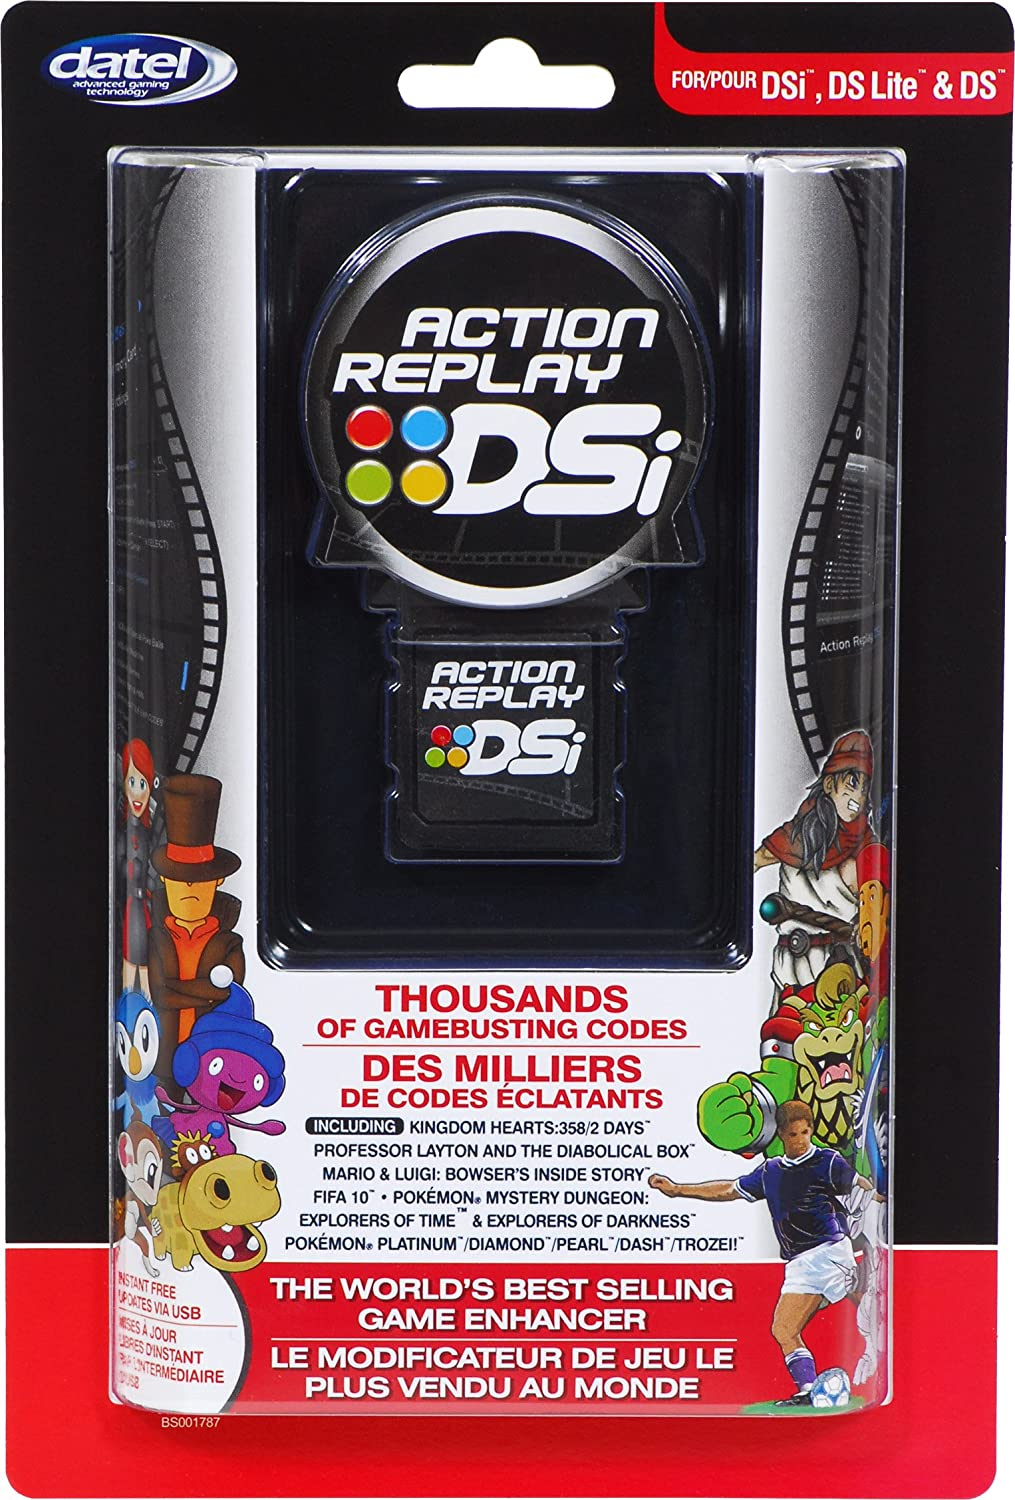 action replay gba sp manual